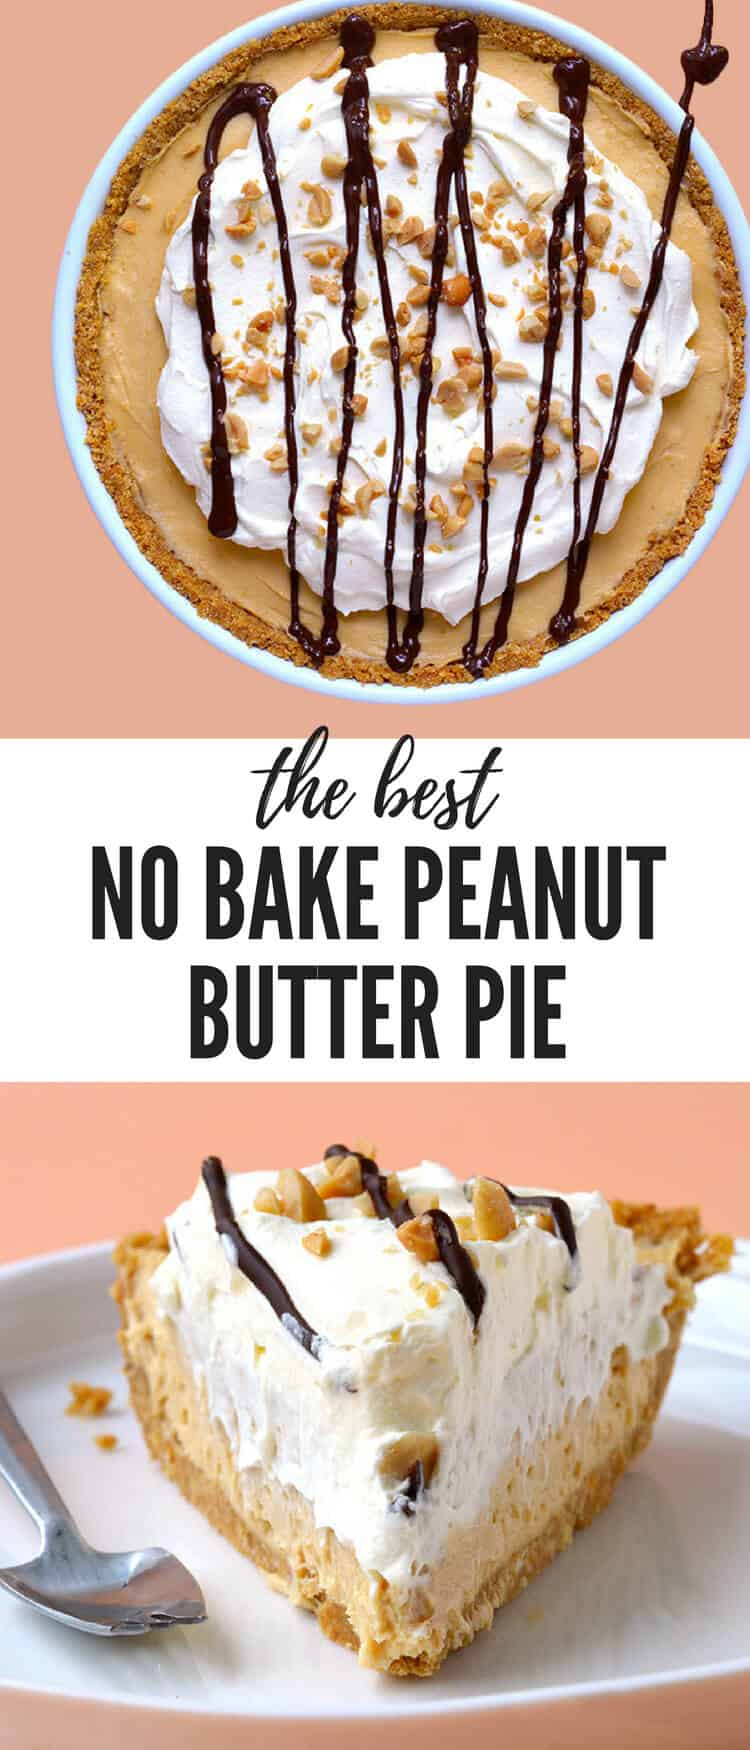 Hands down this is the BEST Peanut Butter Pie ever! Super easy to make, completely no bake and such a crowd pleaser. Topped with whipped cream, peanuts and a drizzle of chocolate. Recipe from sweetestmenu.com #pie #peanutbutter #nobake #dessert